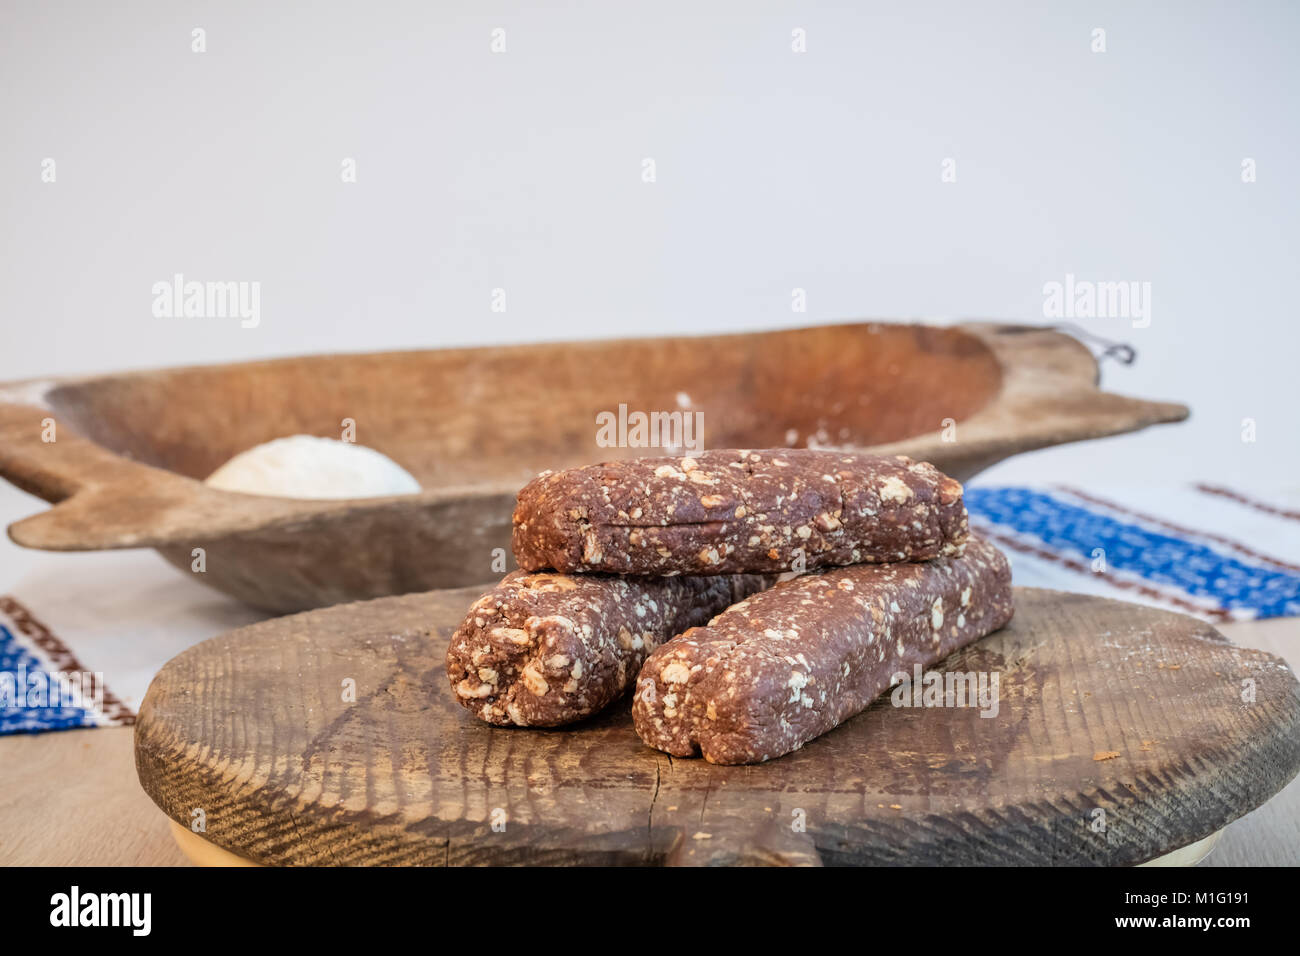 Biscuits with cocoa - Stock Image